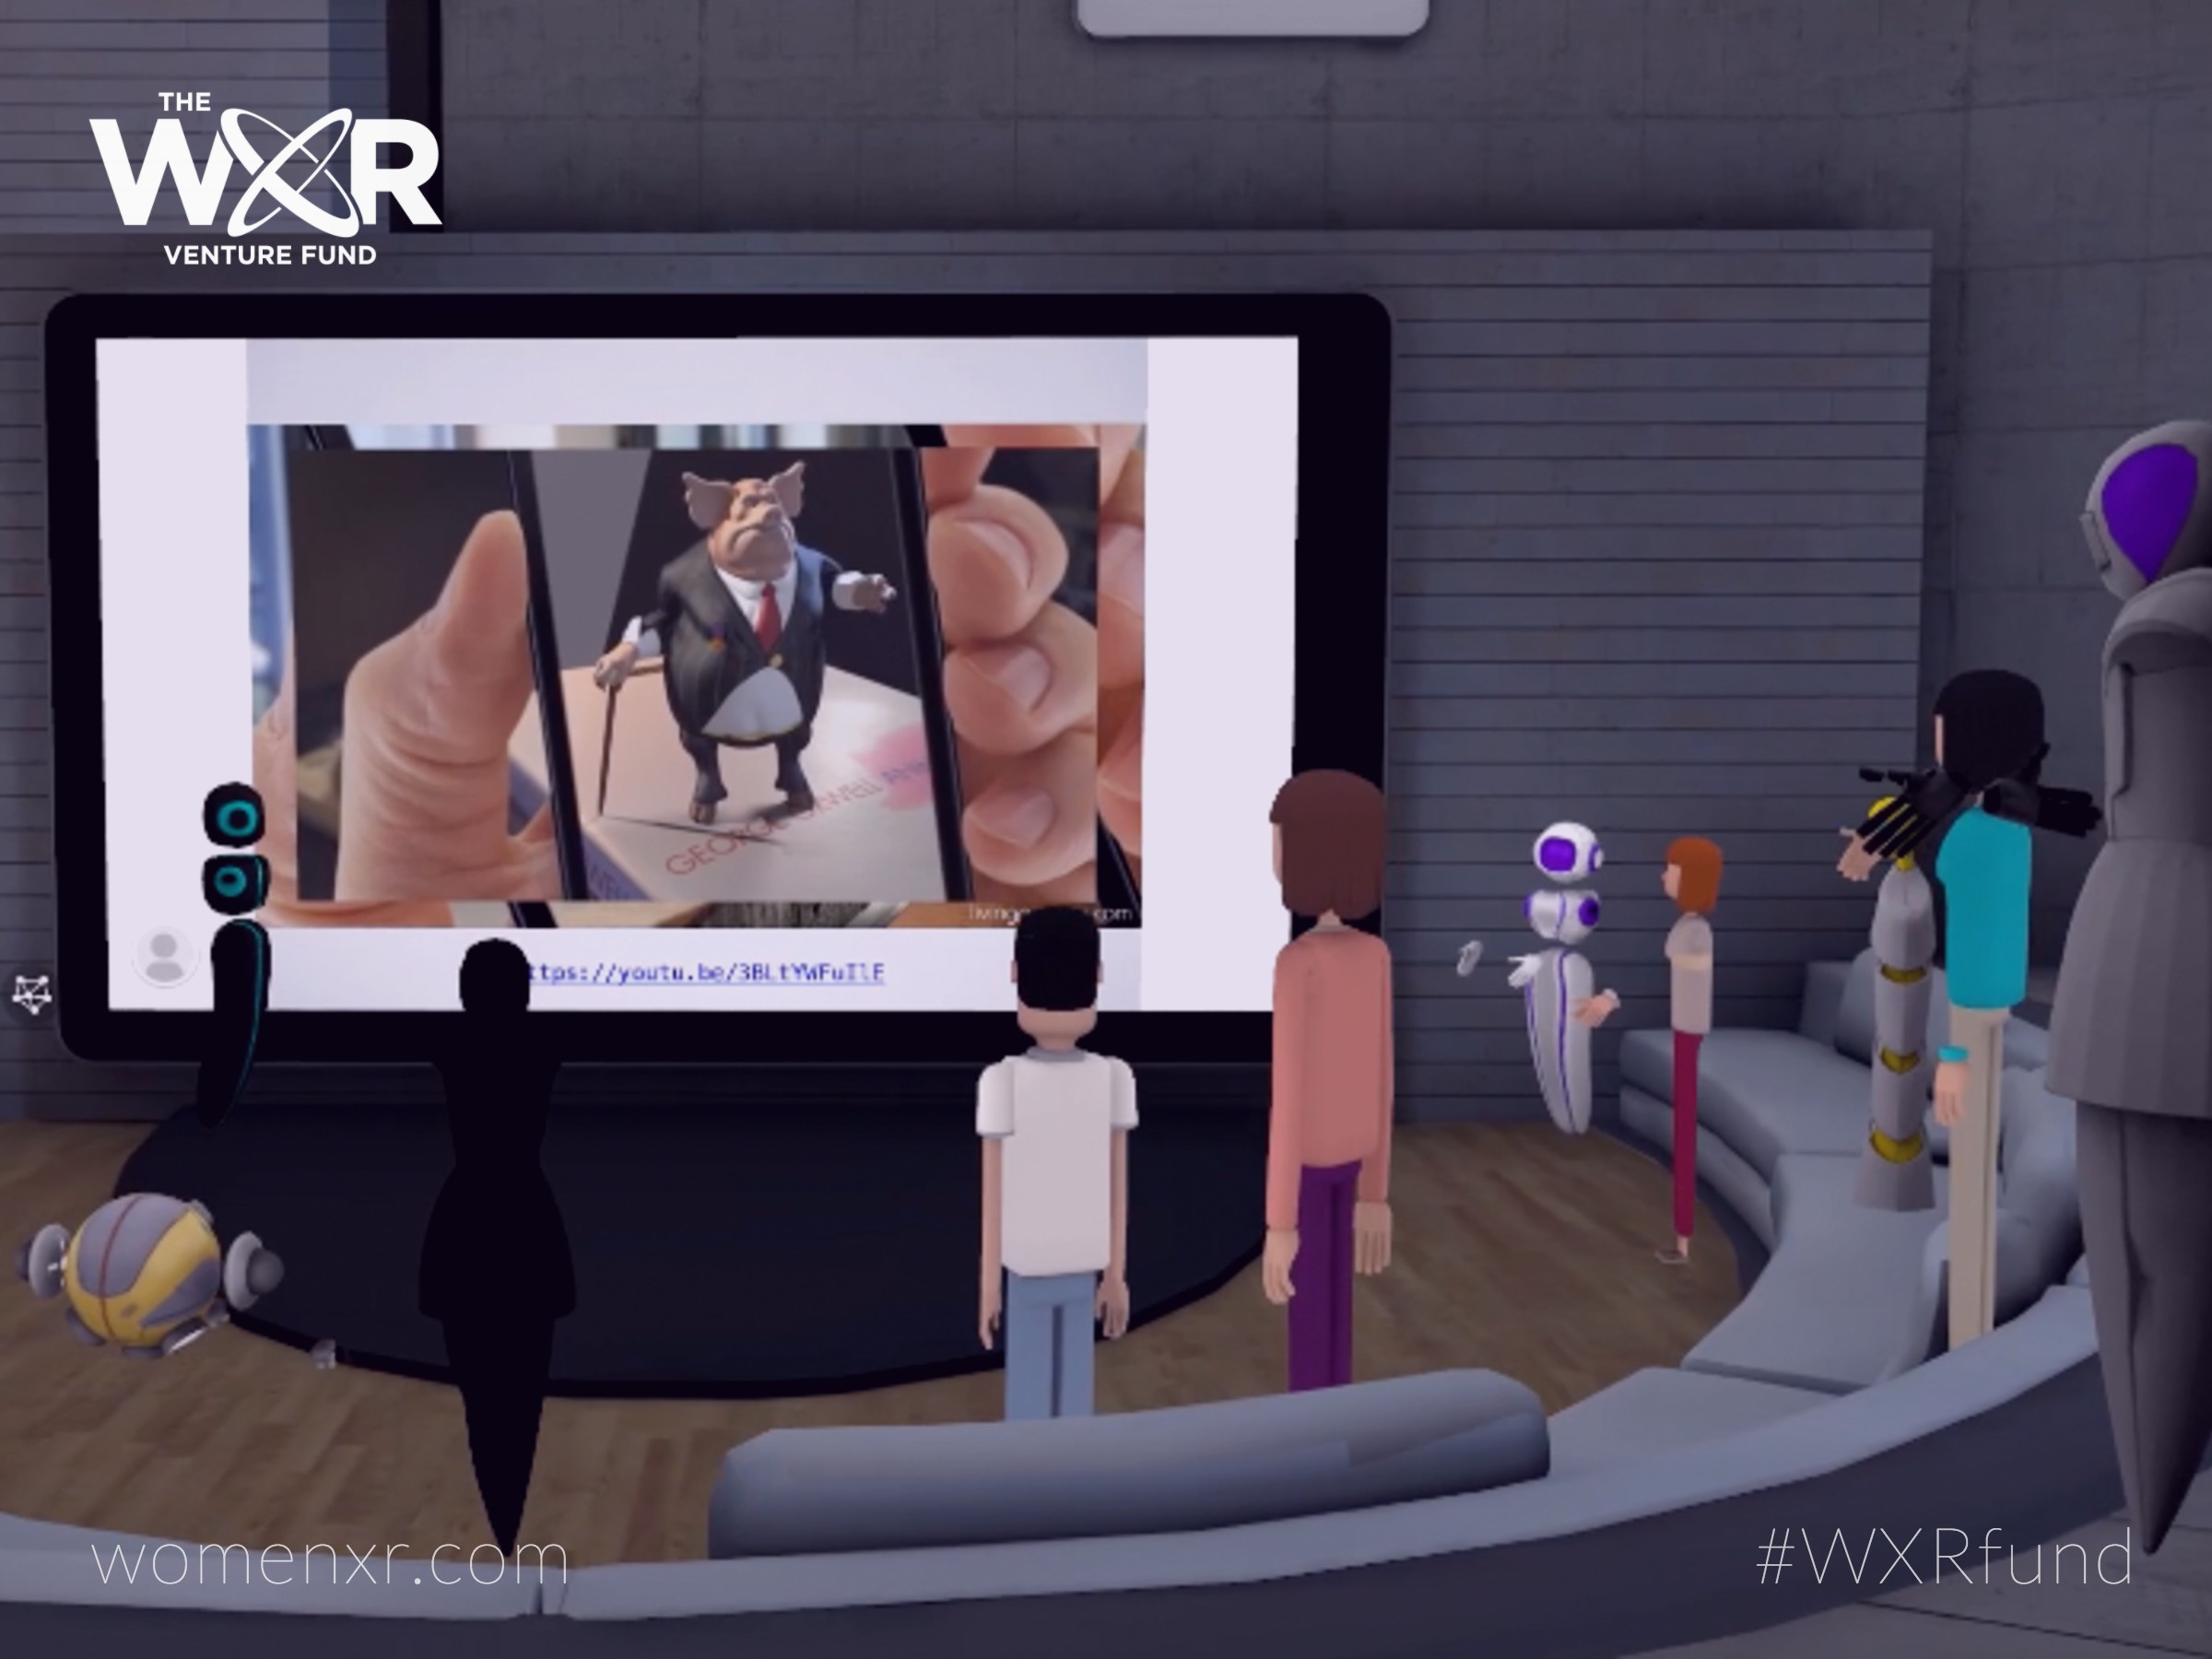 Cheryl-Bayer-2-Living-Pop-Ups-WXR-AltspaceVR-PitchShowcase-XR.jpg